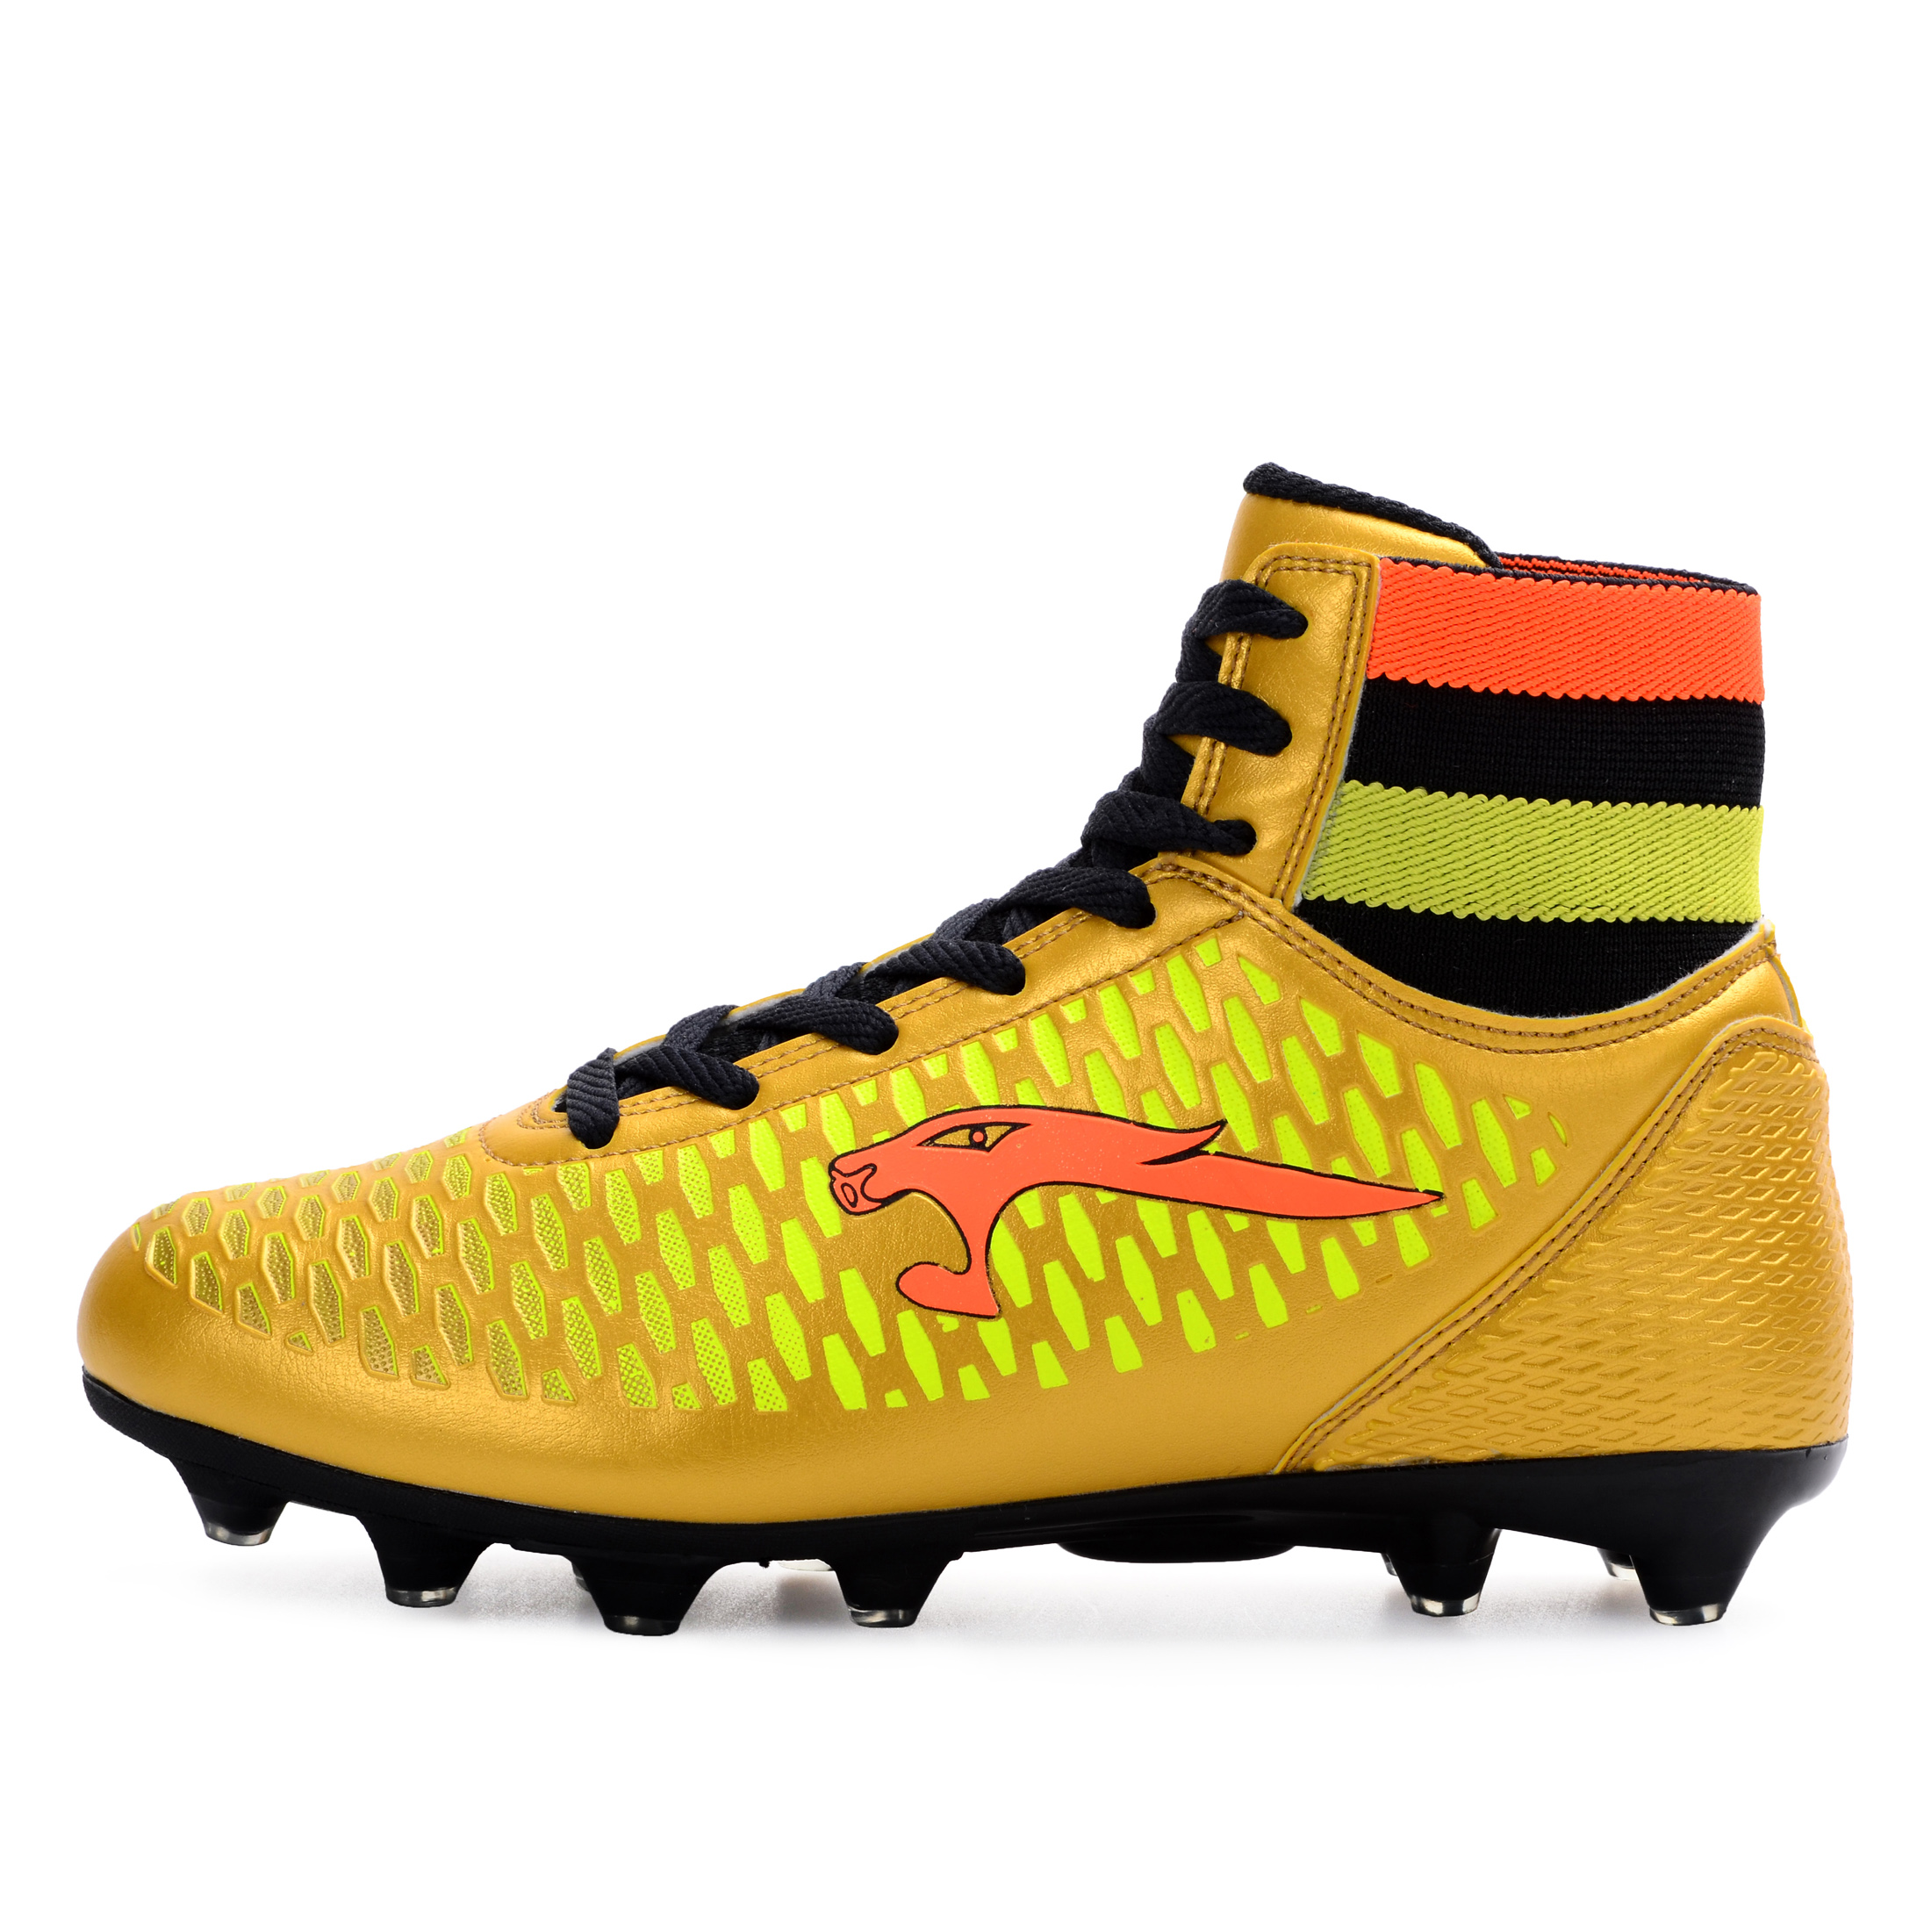 football shoes football soccer shoes high ankle cleats football boots for men kids boys  high top gvhbmbl